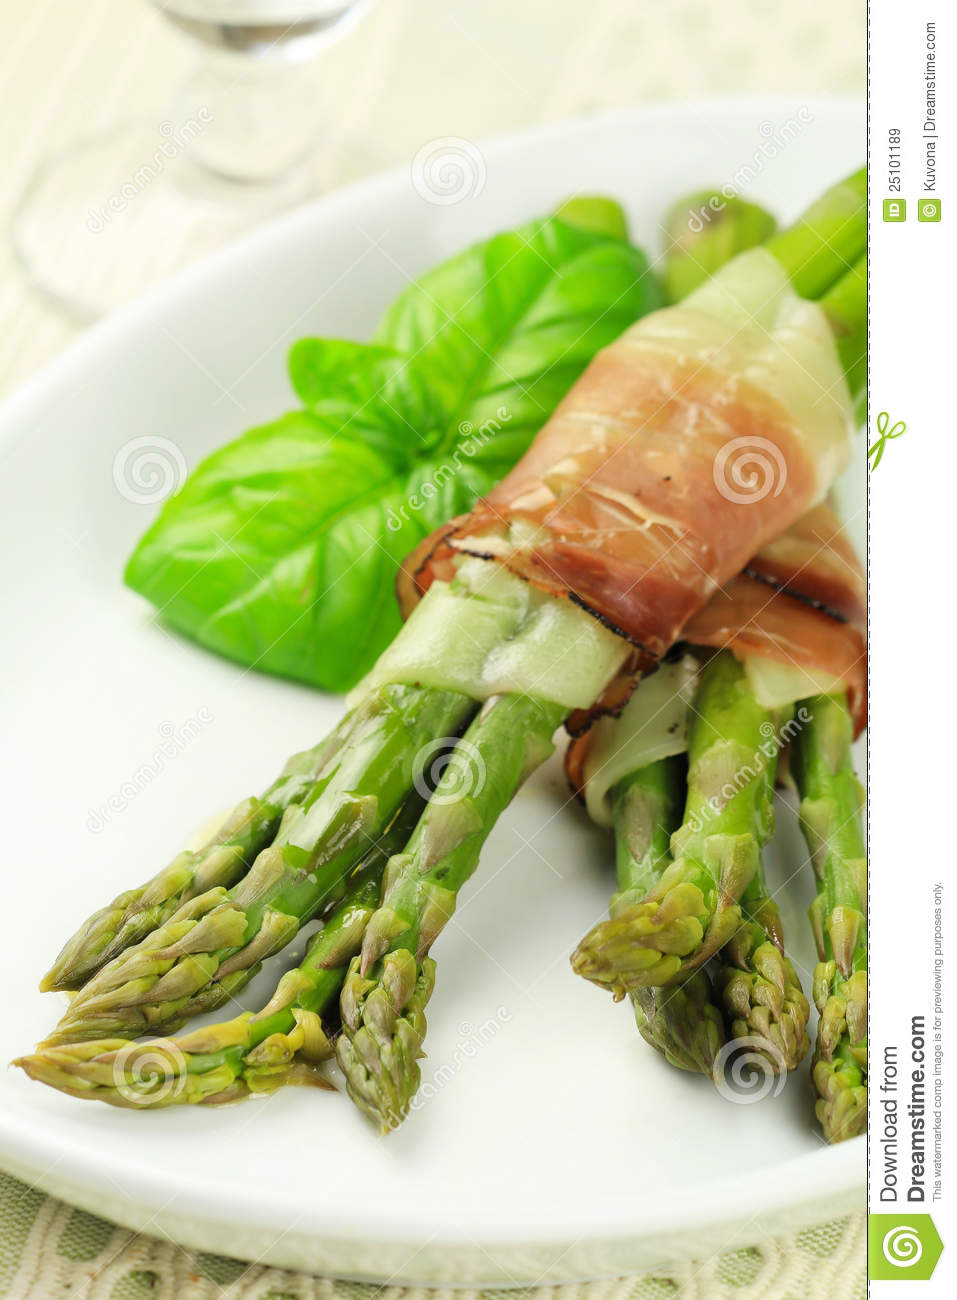 ... cooked green asparagus with cheese and South Tyrolean smoked bacon